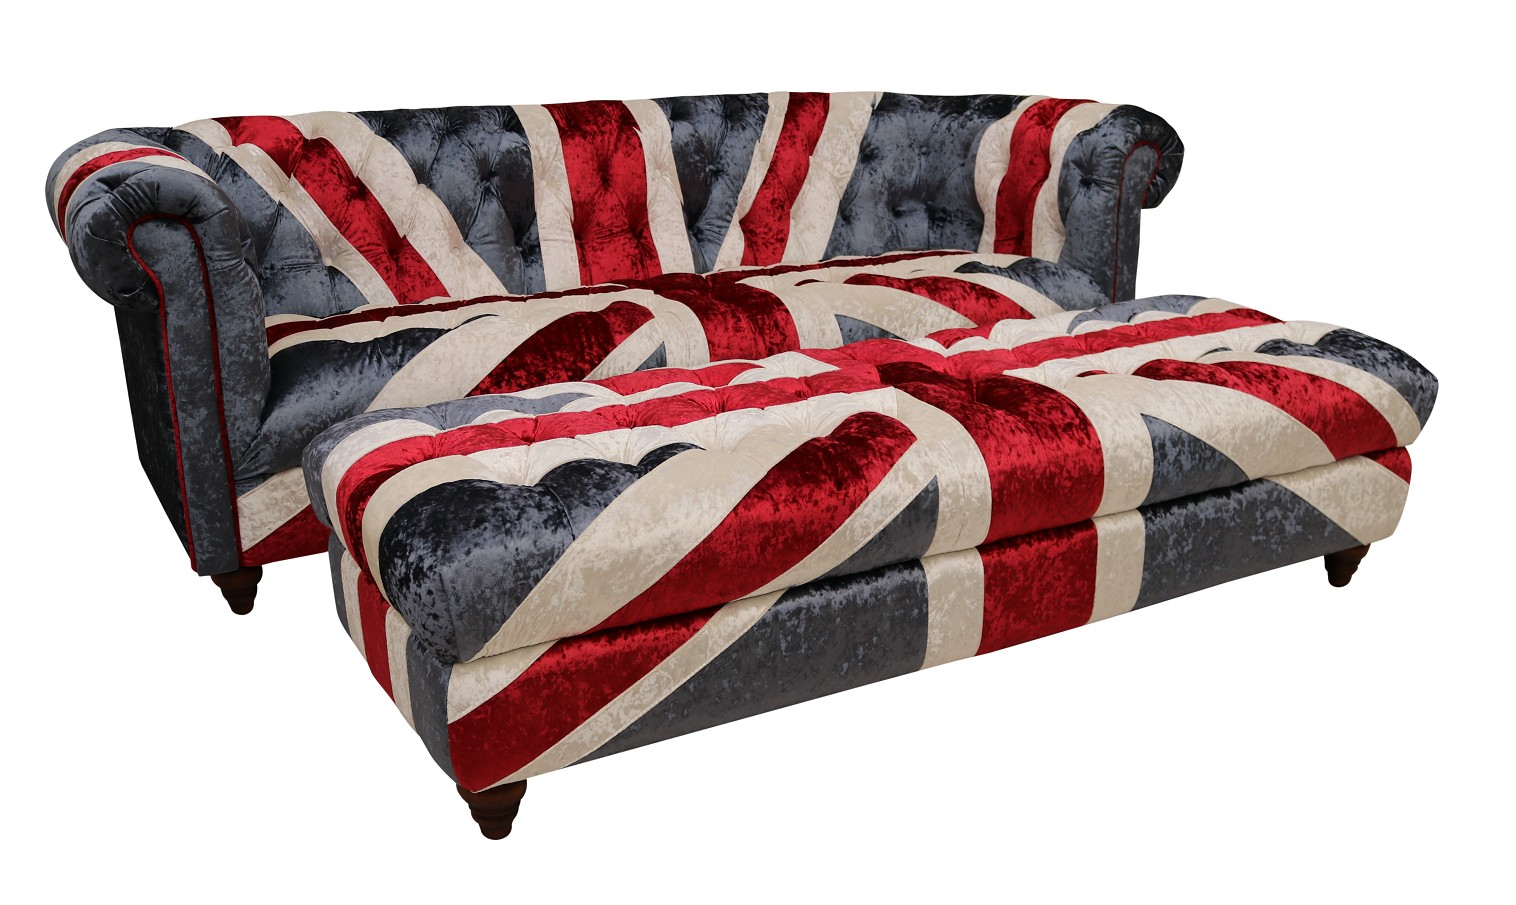 Picture of: Union Jack Chesterfield 3 Seater Sofa With Matching Ottoman Footstool In Plush Velvet Vintage Furniture By Designer Sofas For You